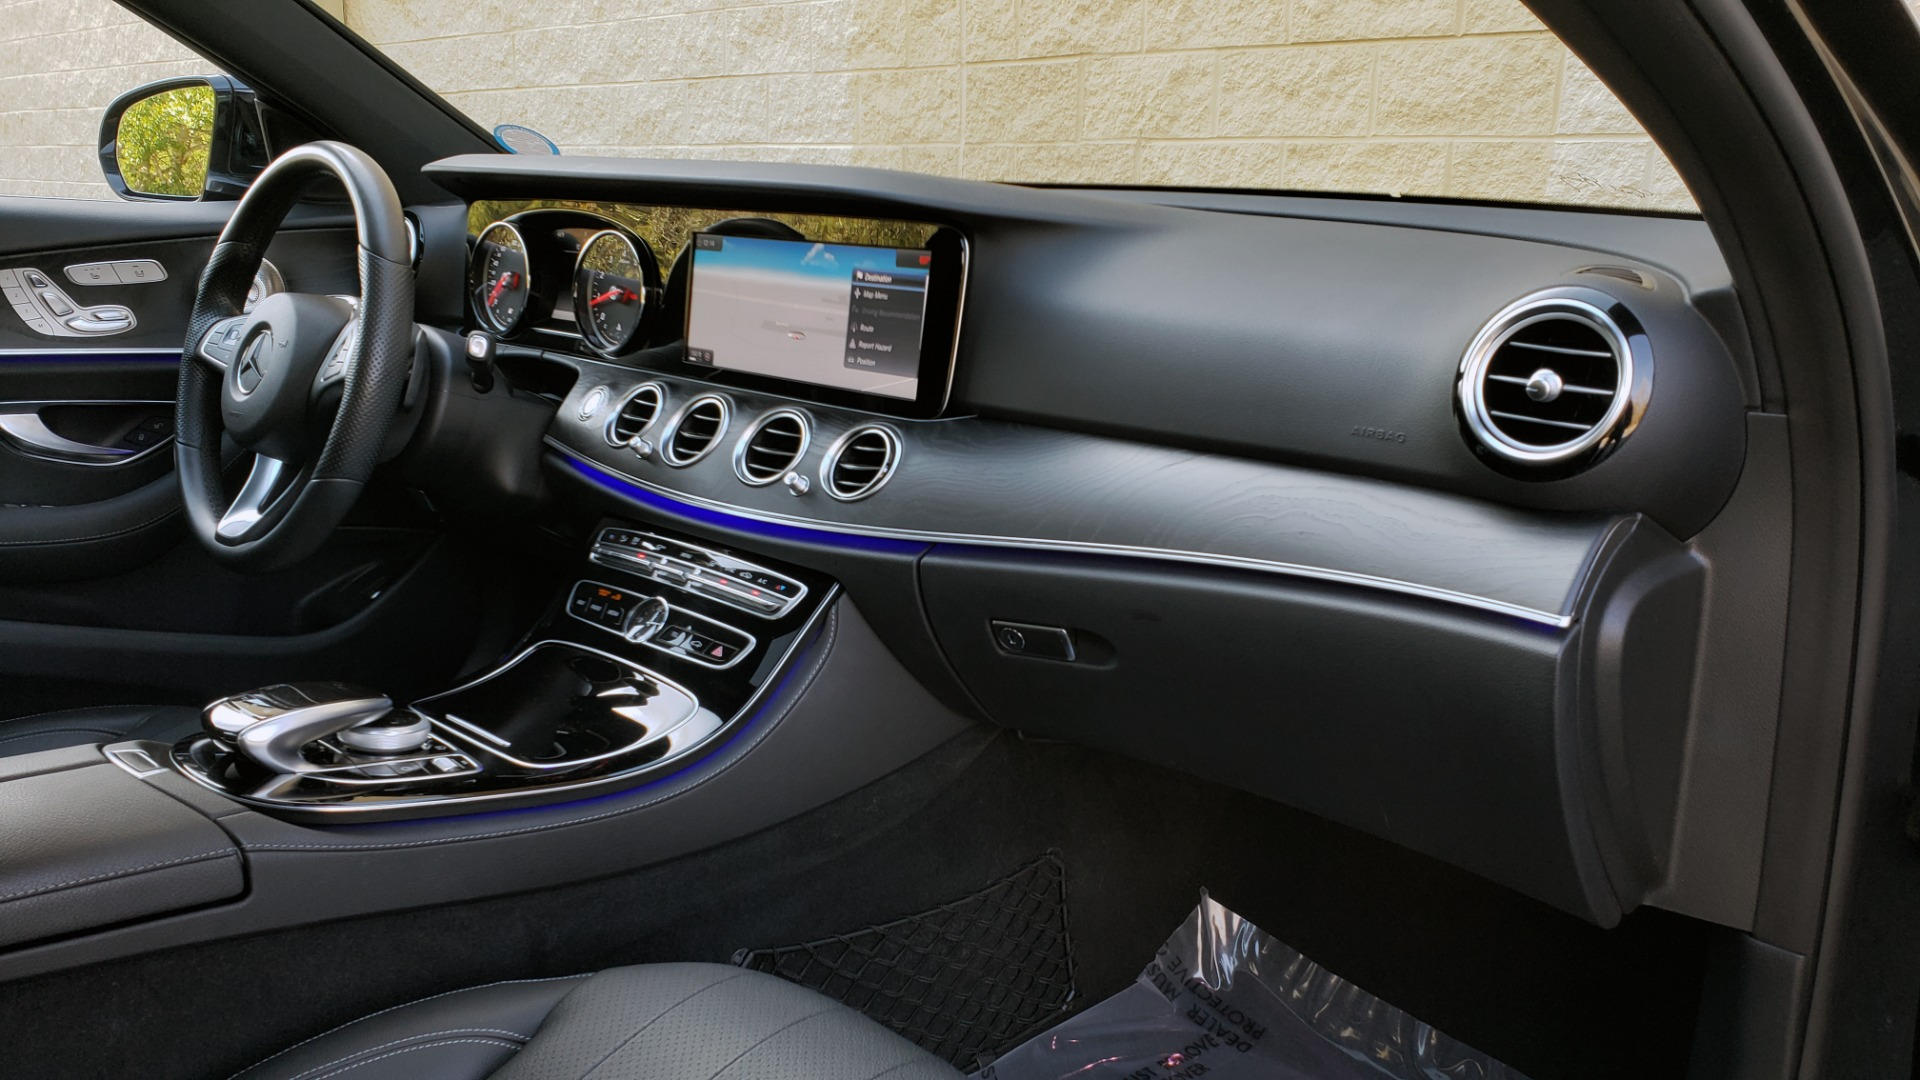 Used 2017 Mercedes-Benz E-CLASS E 300 PREMIUM / NAV / SUNROOF / BURMESTER / HTD STS / REARVIEW for sale Sold at Formula Imports in Charlotte NC 28227 69